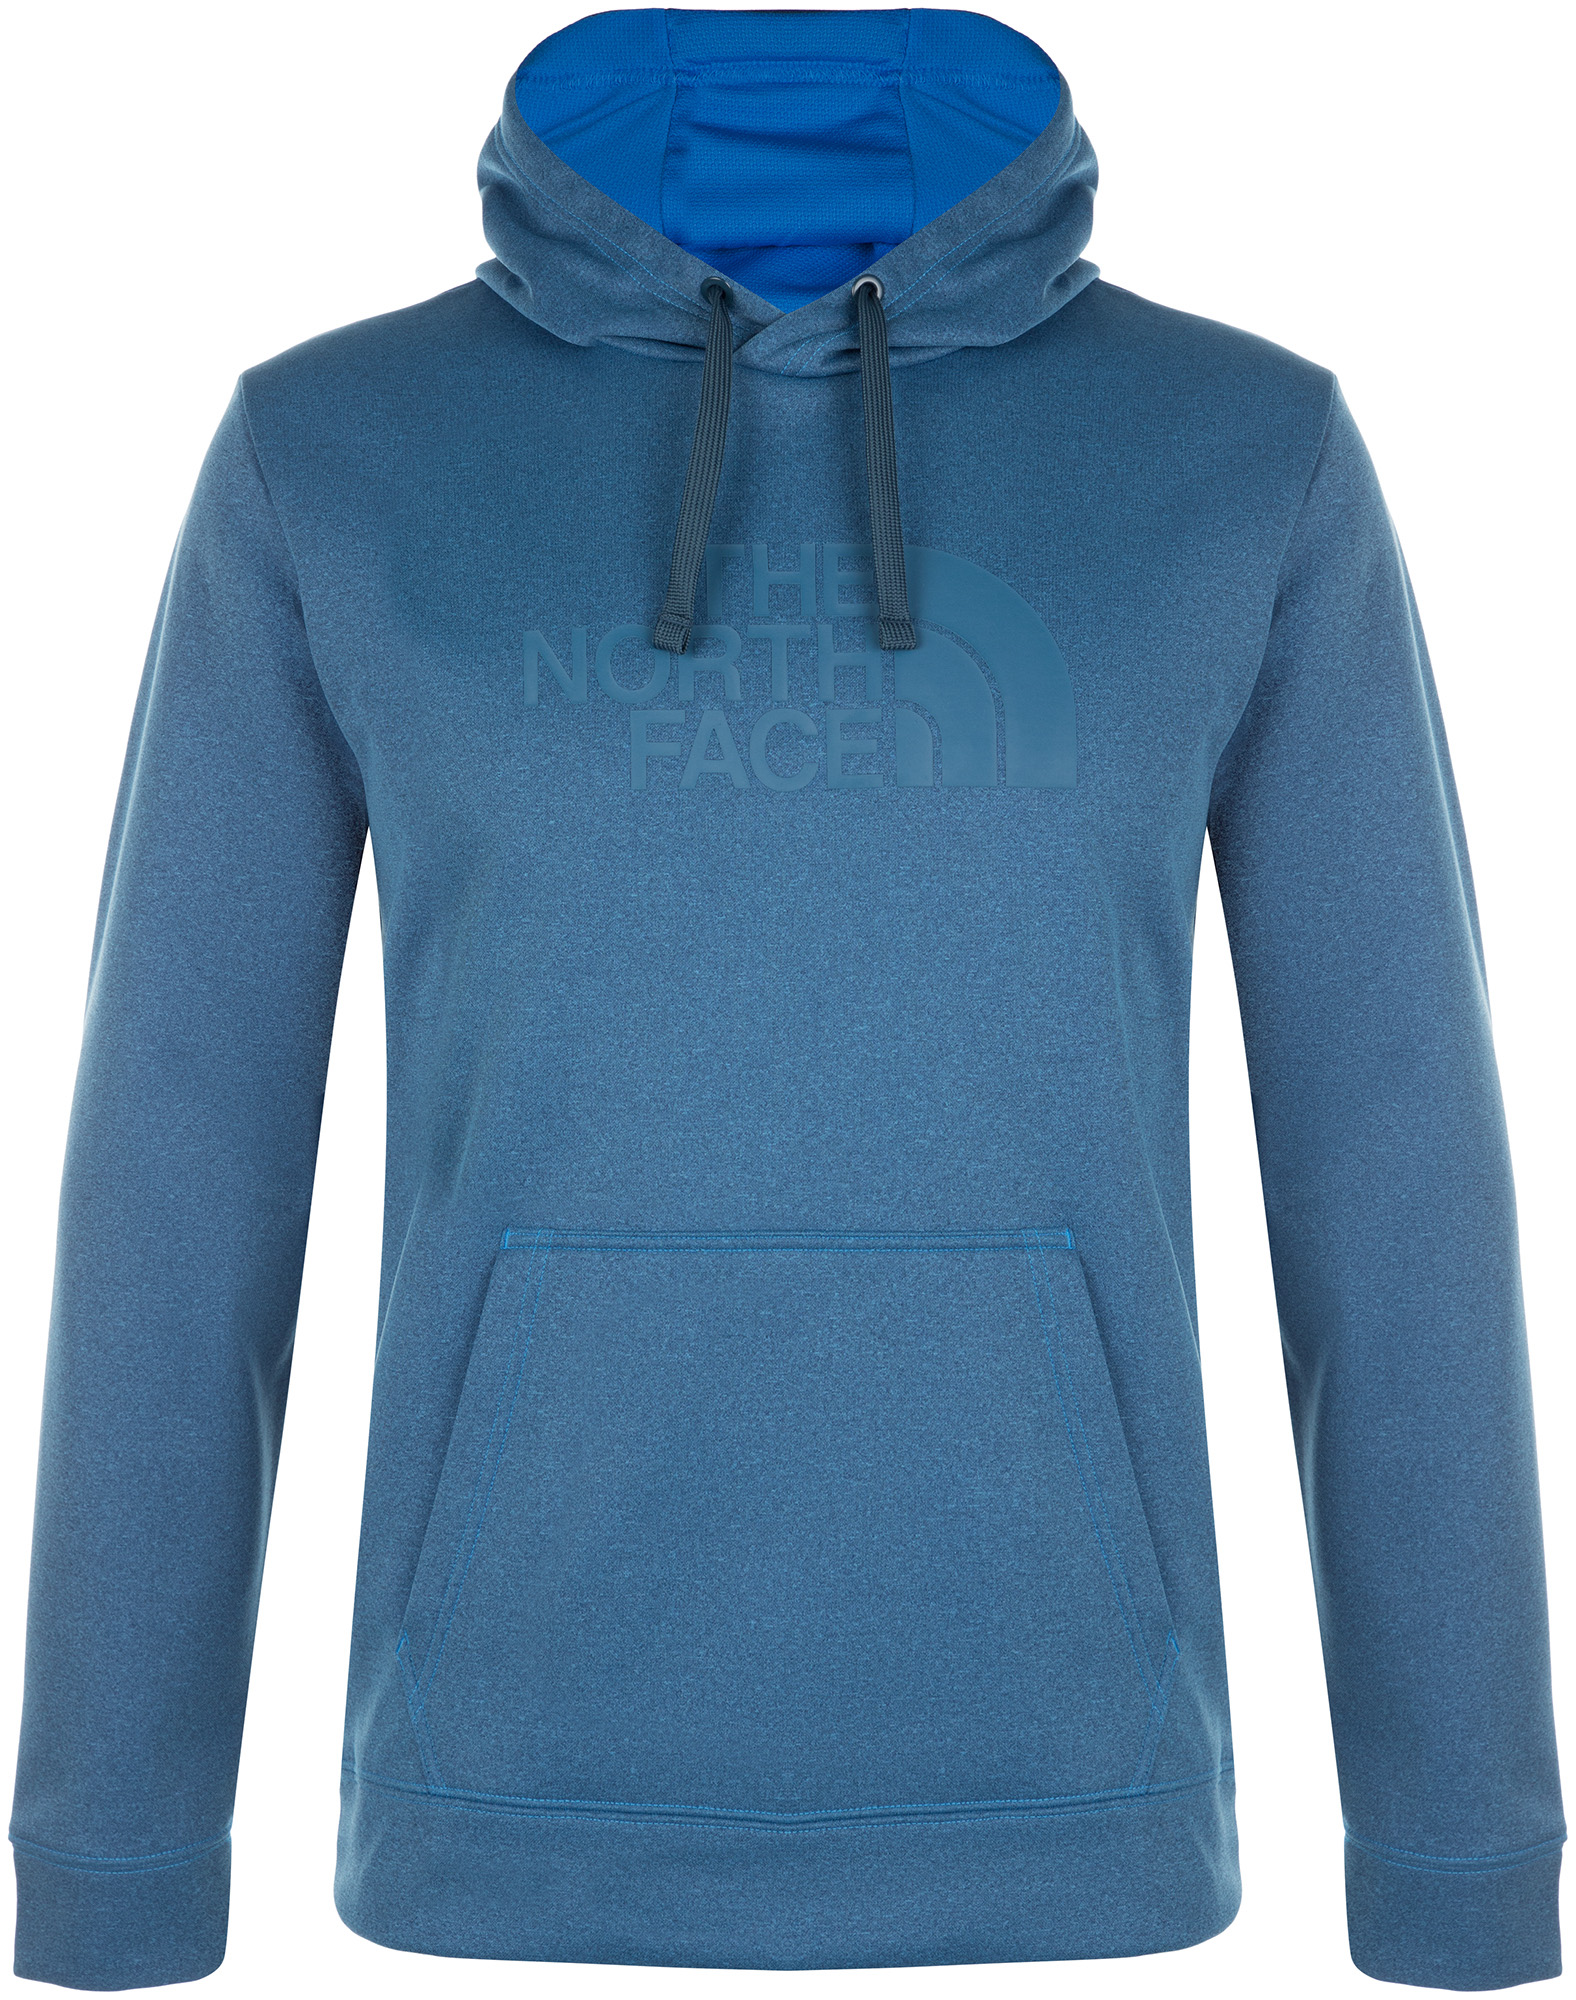 The North Face Худи мужская The North Face Surgent, размер 52